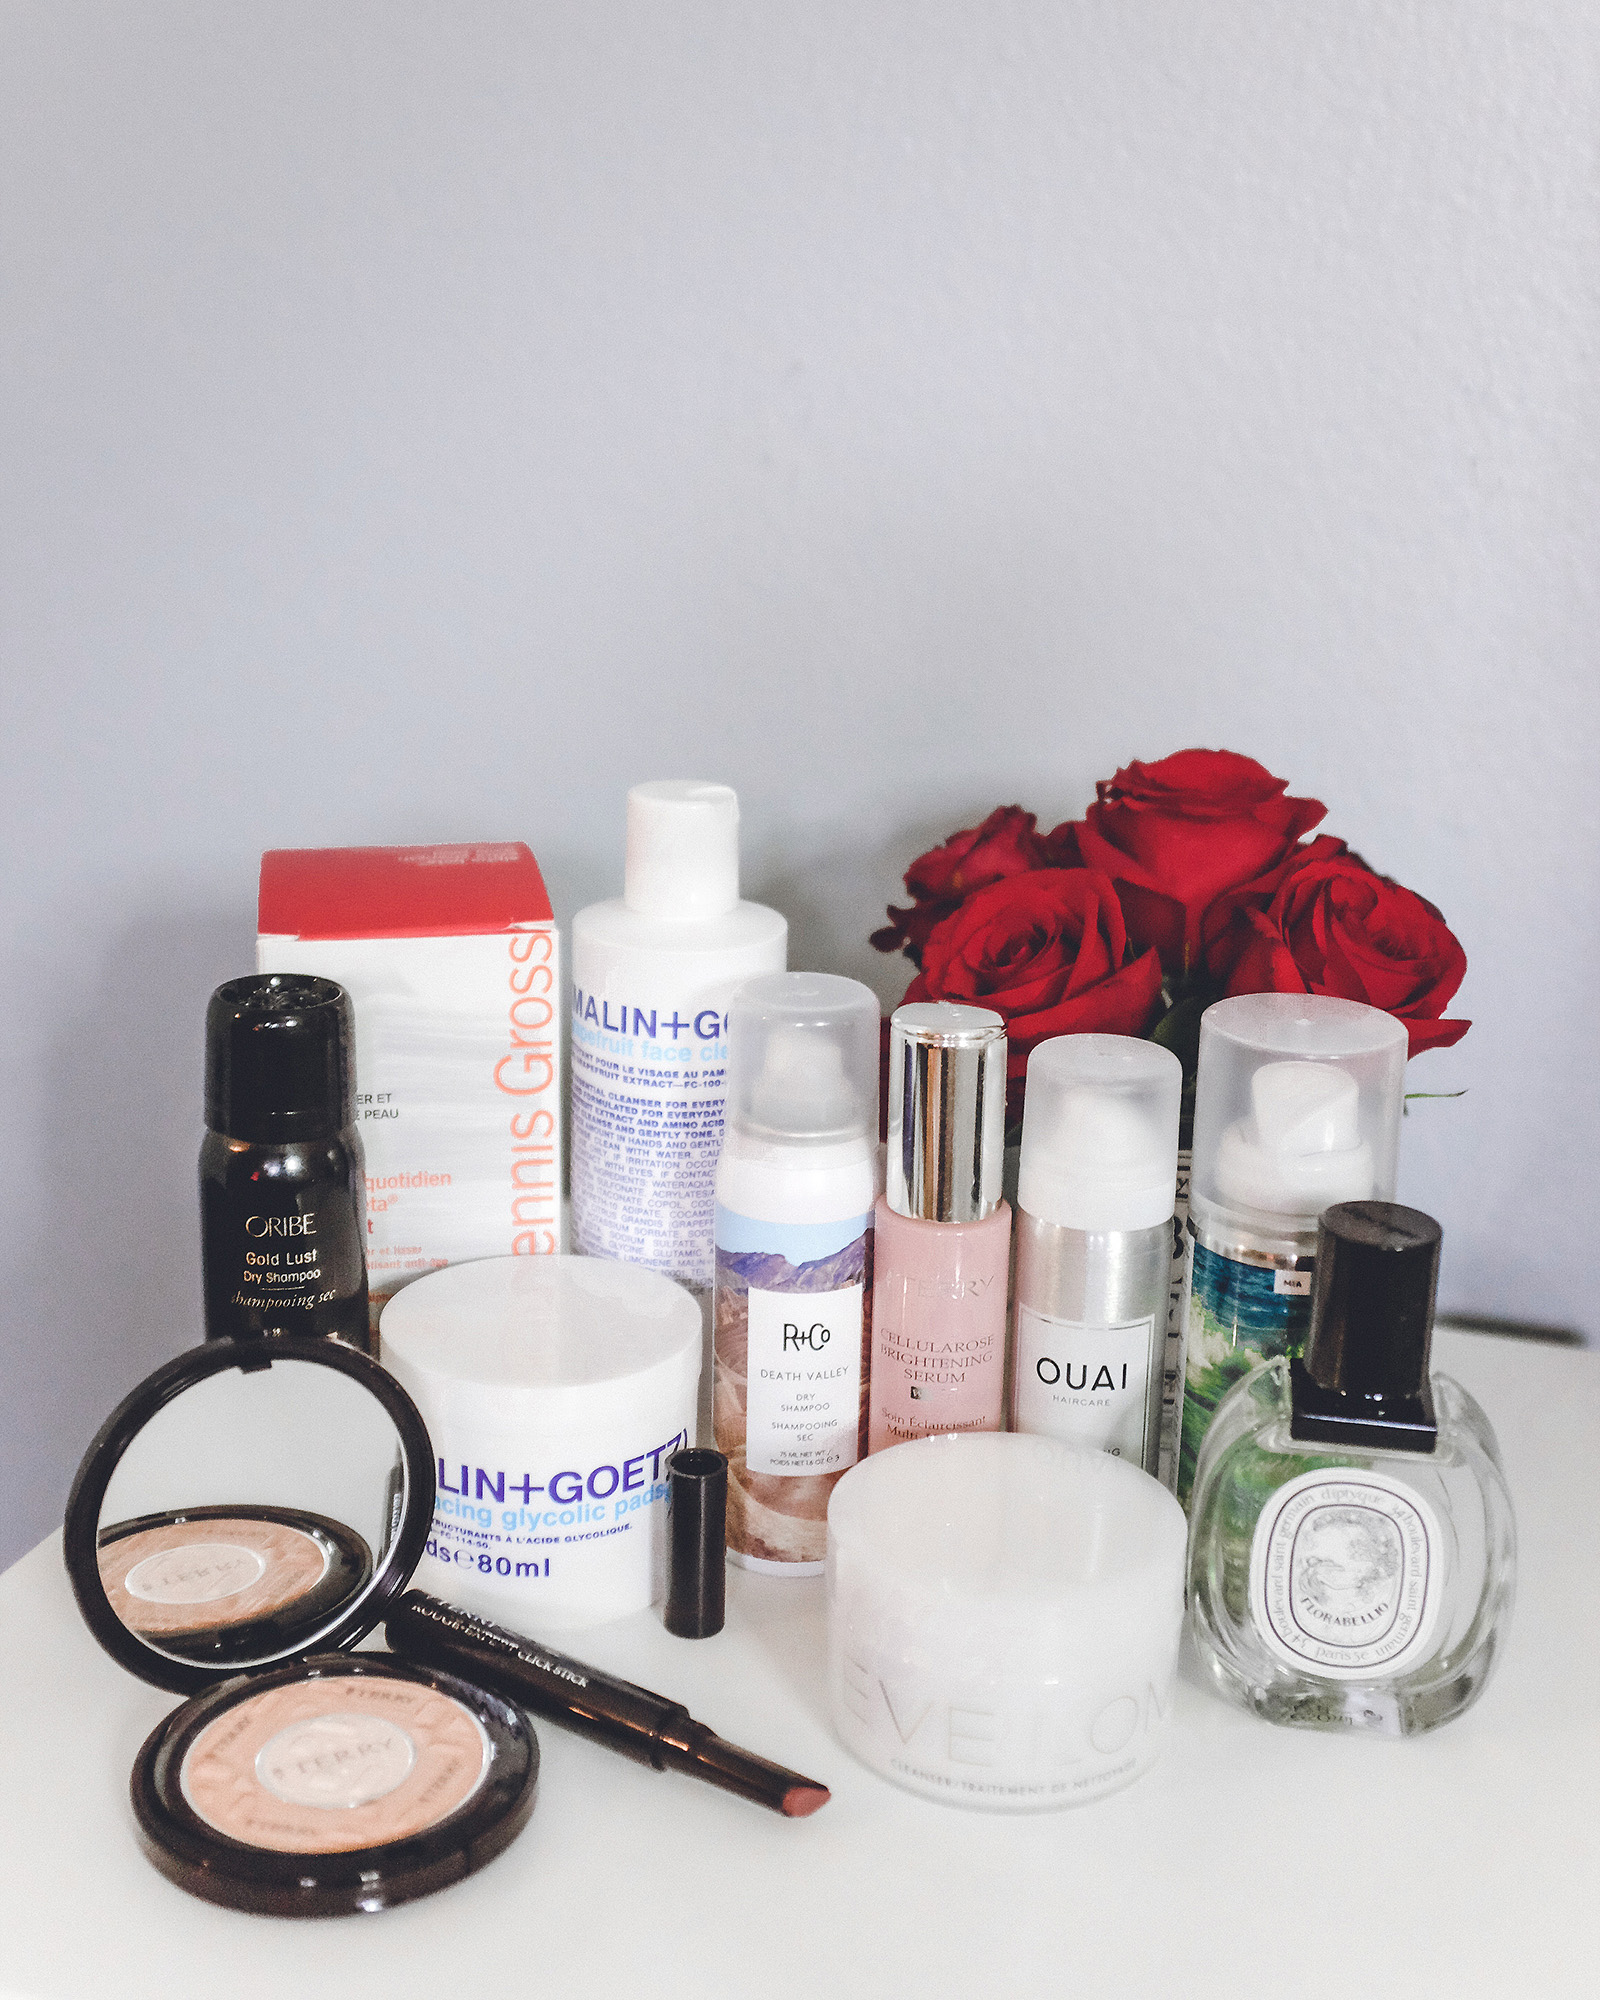 Space NK Beauty Picks